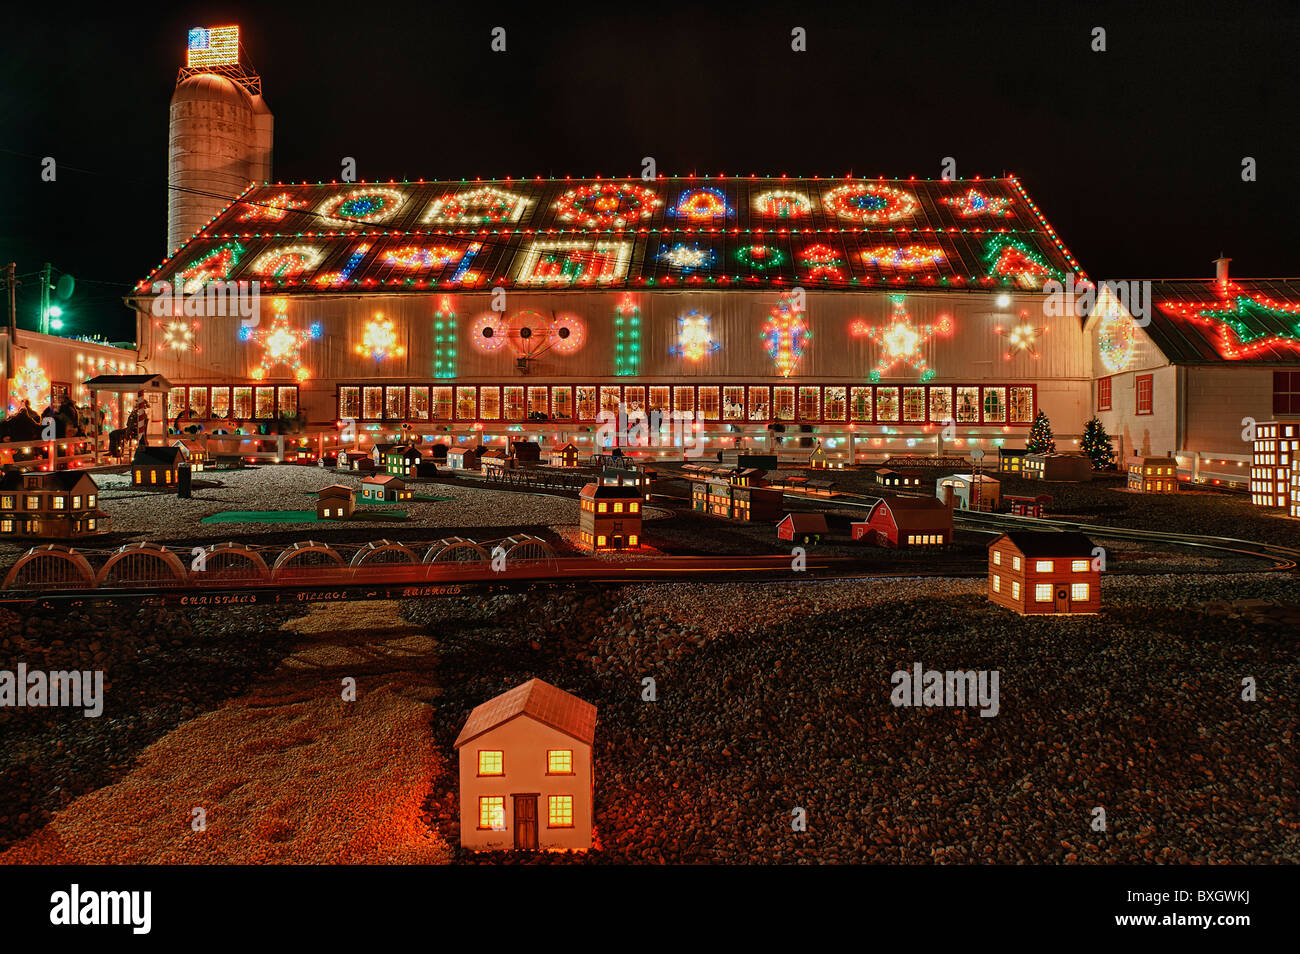 Christmas display at Koziar's Christmas Village, Bernville, PA ...